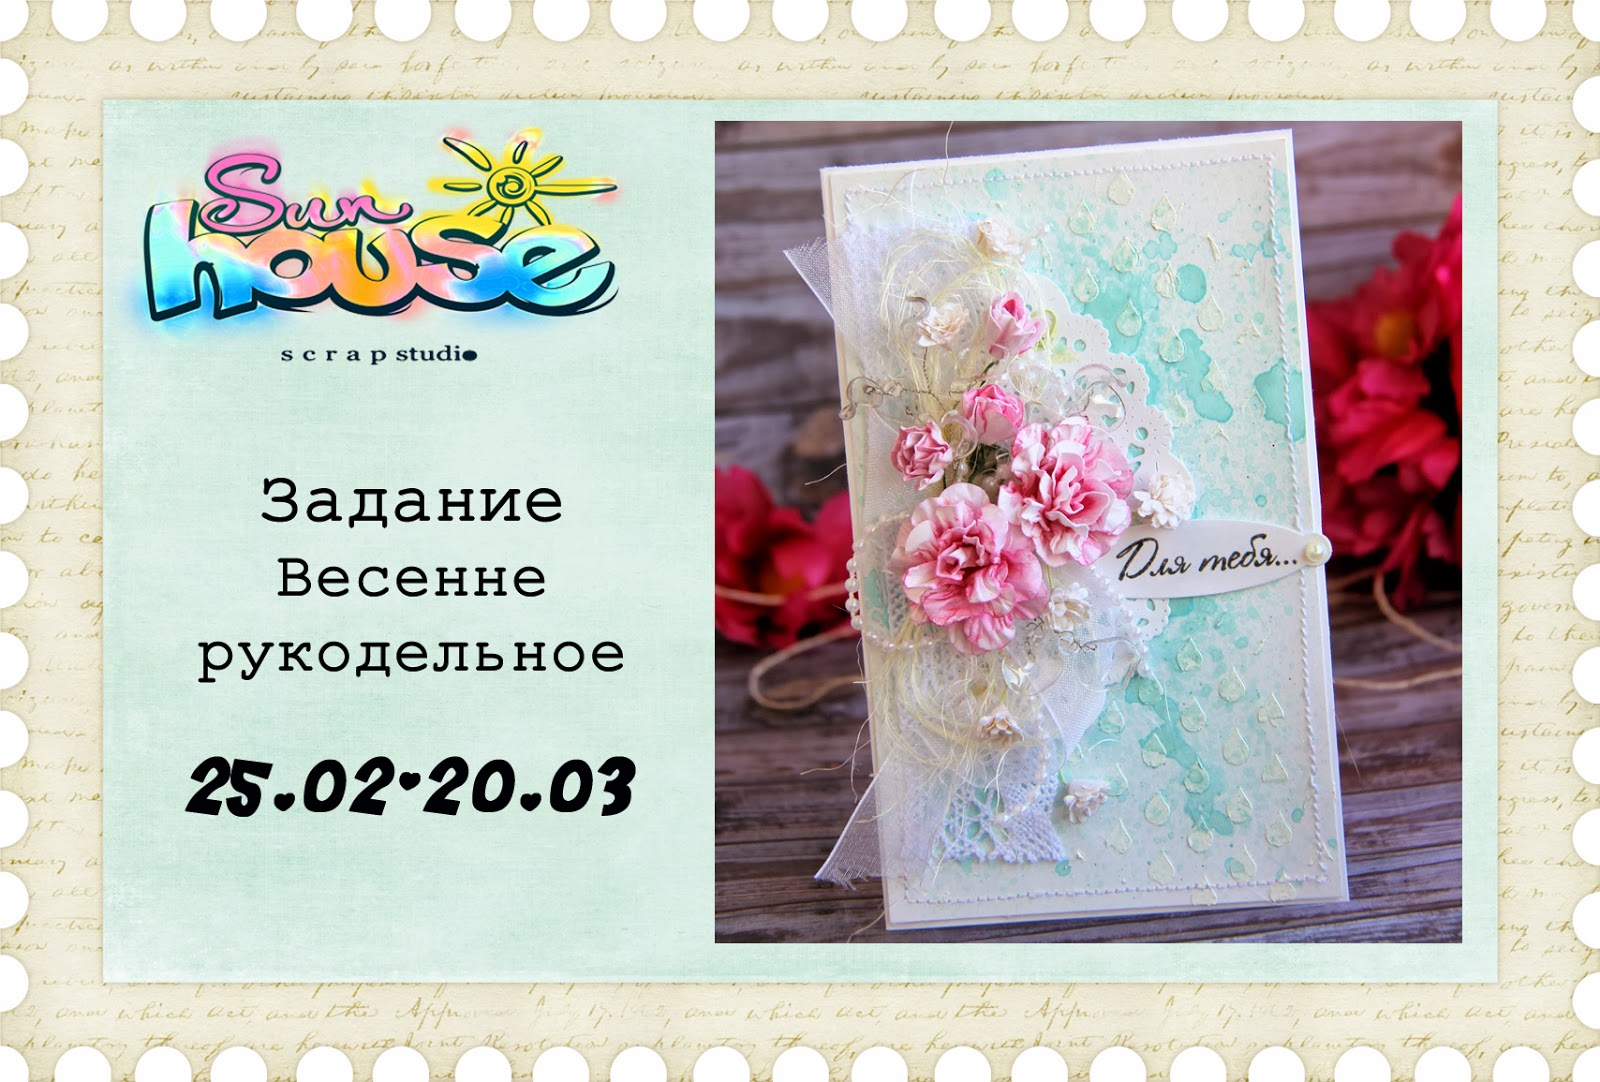 http://scrapstudio-sunhouse.blogspot.ru/2014/02/blog-post_25.html